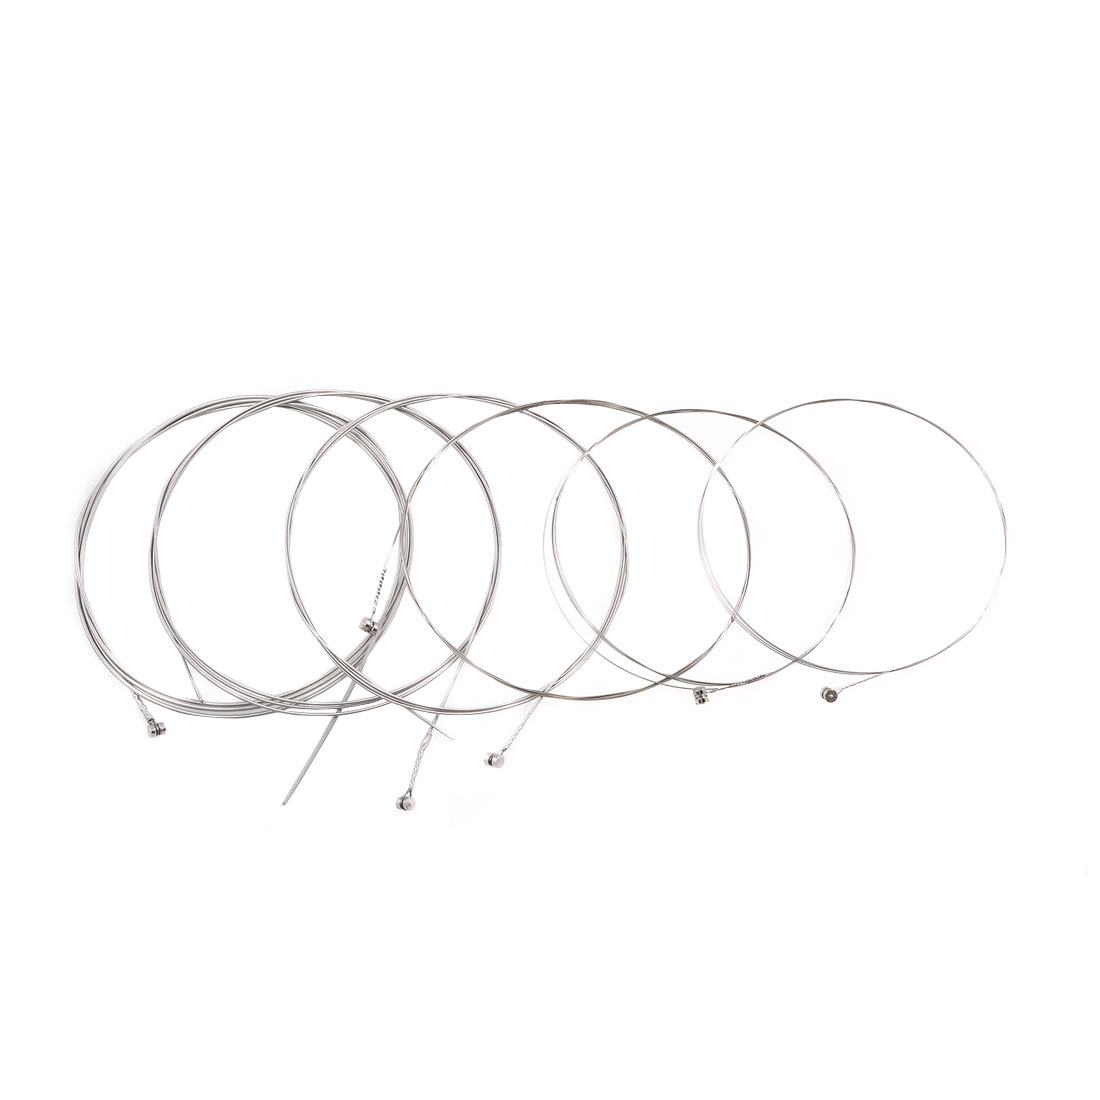 6 Pcs Silver Tone Steel Wire Electric Guitar String